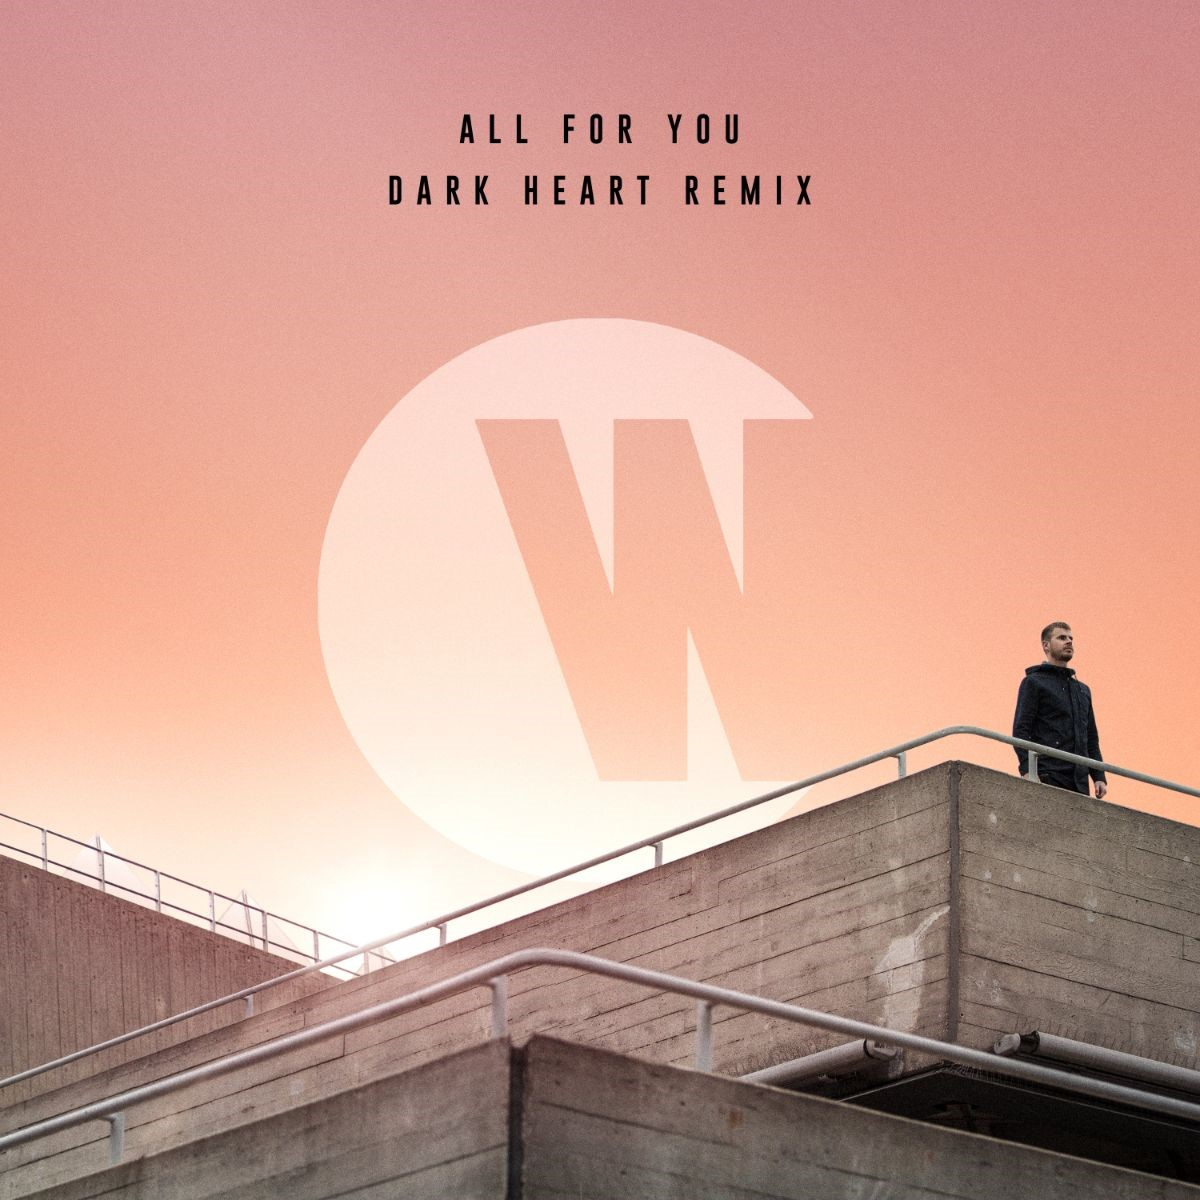 Dark Heart Drops Remix of Wilkinson Single 'All For You'